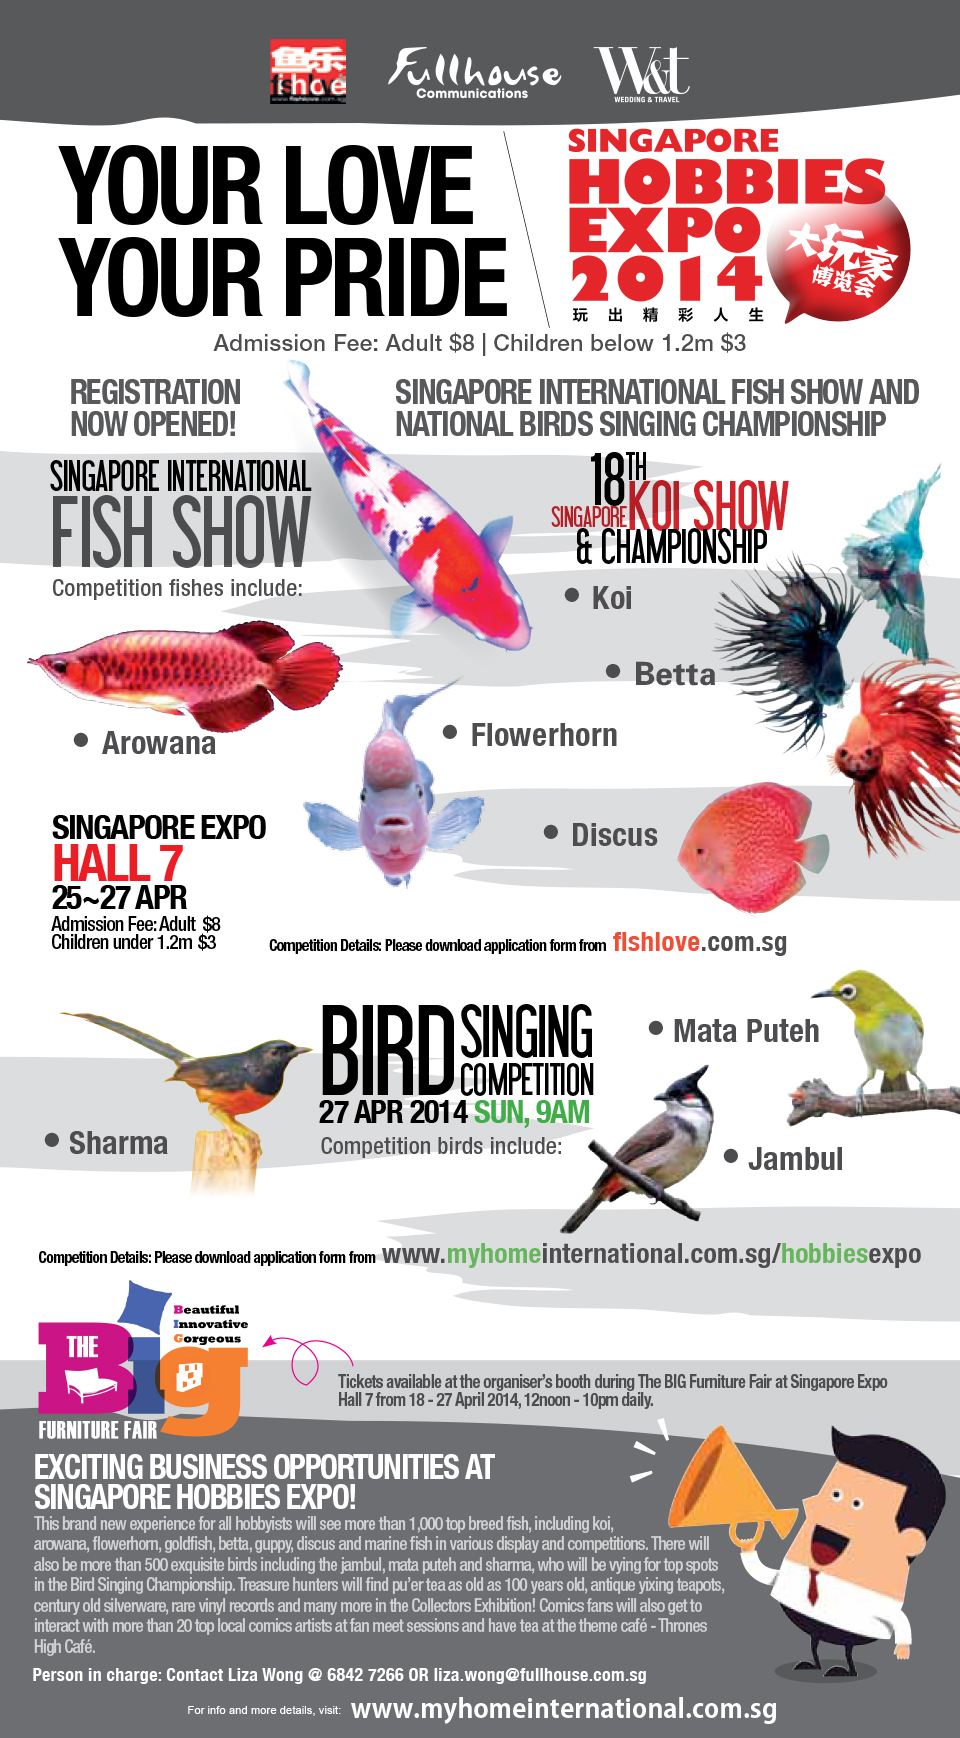 Singapore Hobbies Expo 2014 Happens This Weekend: Fish, Birds, Comics & Collectors Exhibition